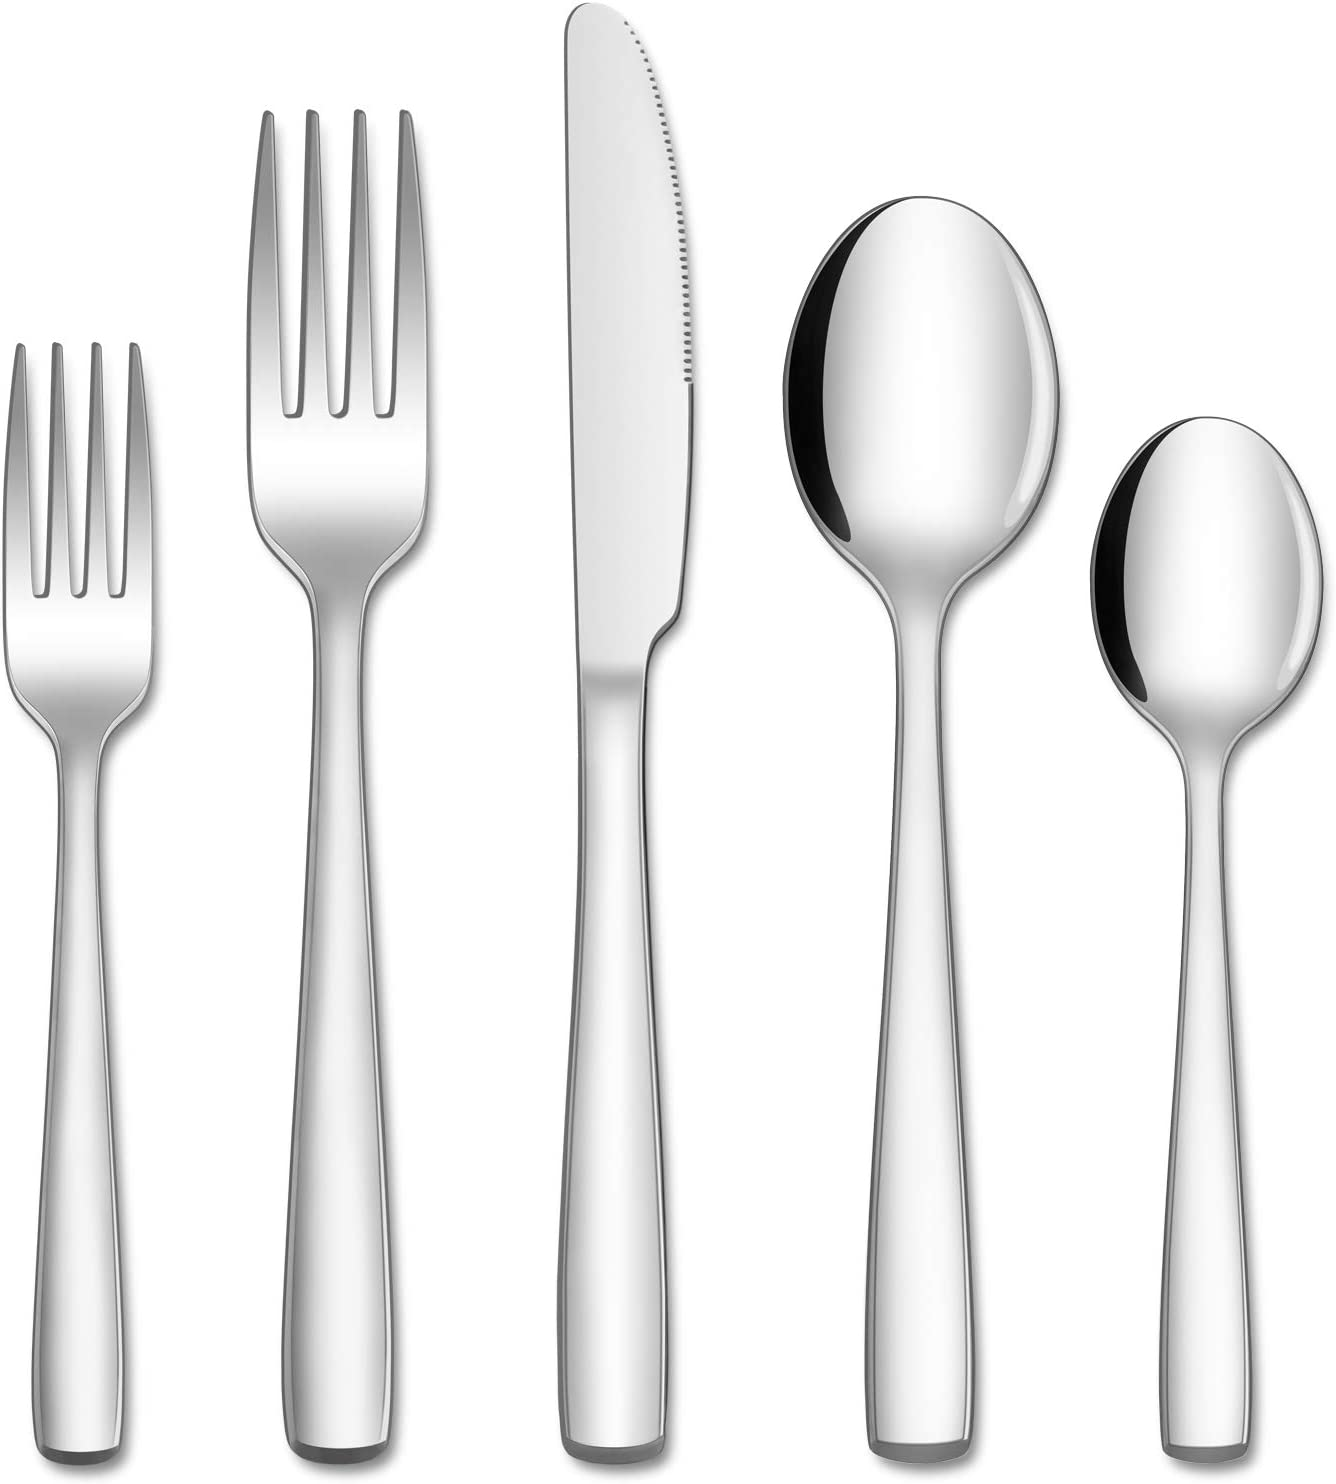 Hiware 40-Piece Silverware Set for 8, Stainless Steel Flatware Cutlery Set For Home Kitchen Restaurant Hotel, Mirror Polished, Dishwasher Safe